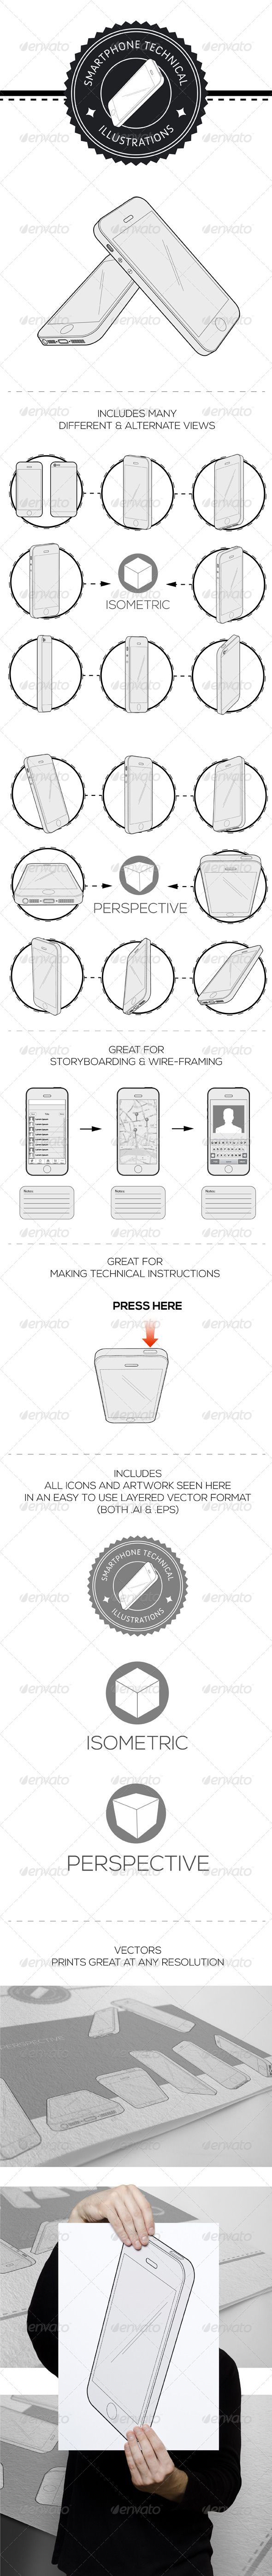 Smartphone Technical Illustration Vector Pack This pack includes many different views of the popular iPhone 5 in a vector format making them perfect for re-sizing to any scale for any design project. http://startupstacks.com/vectors/smartphone-technical-illustration-vector-pack.html - free download